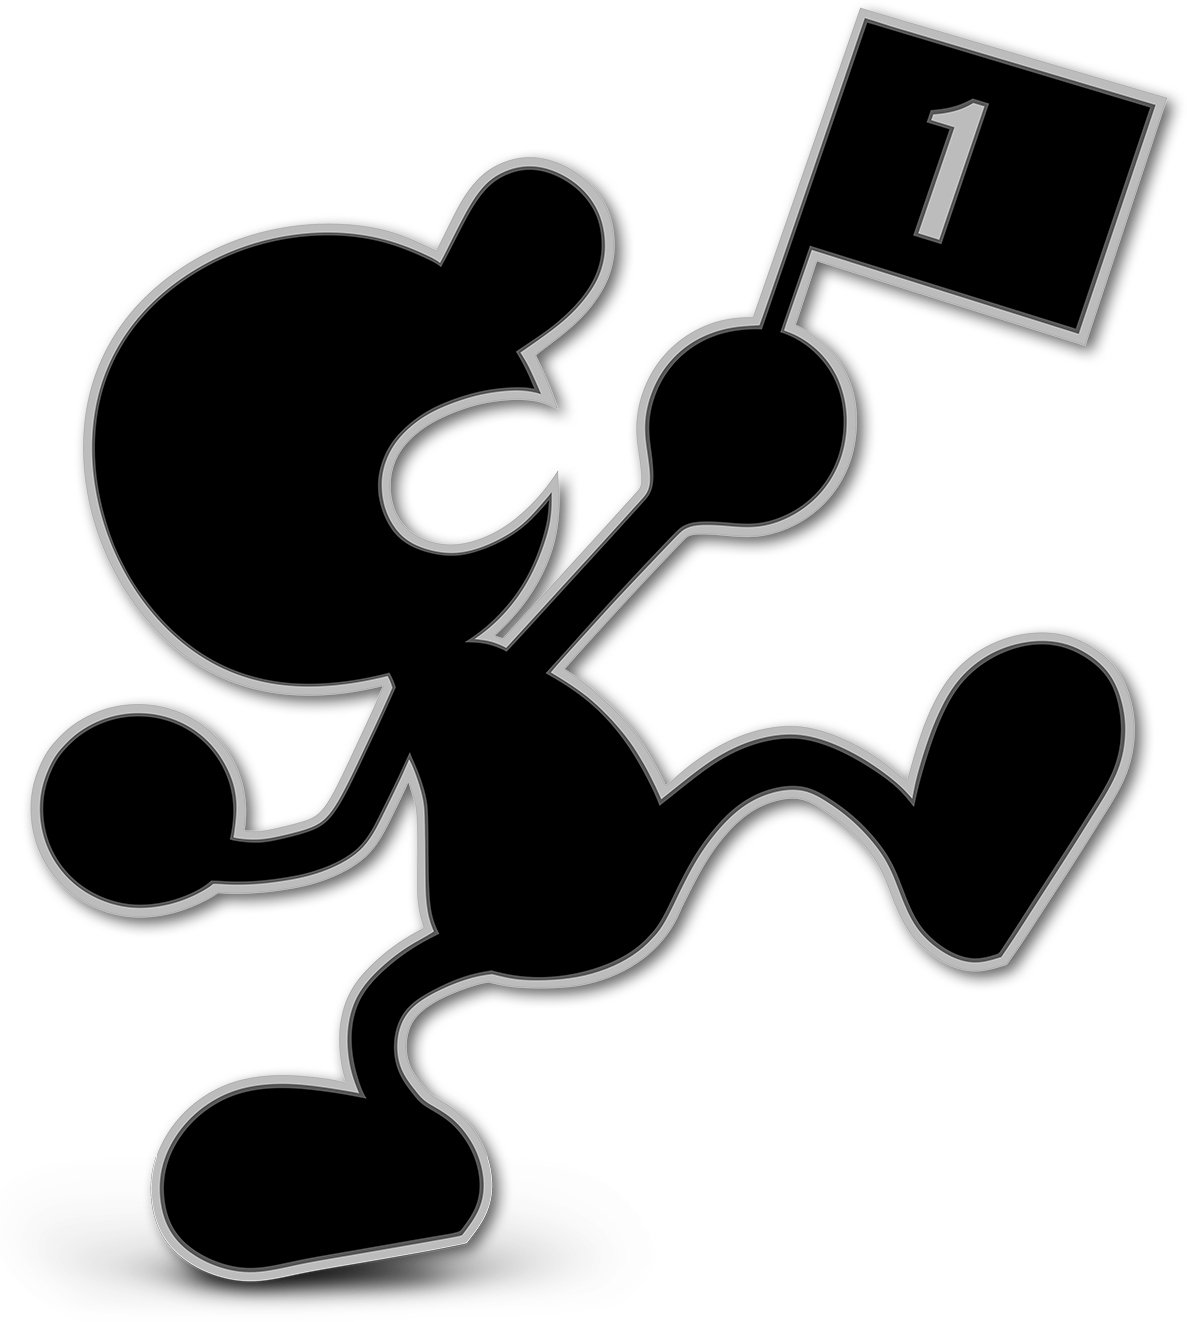 Mr Game & Watch